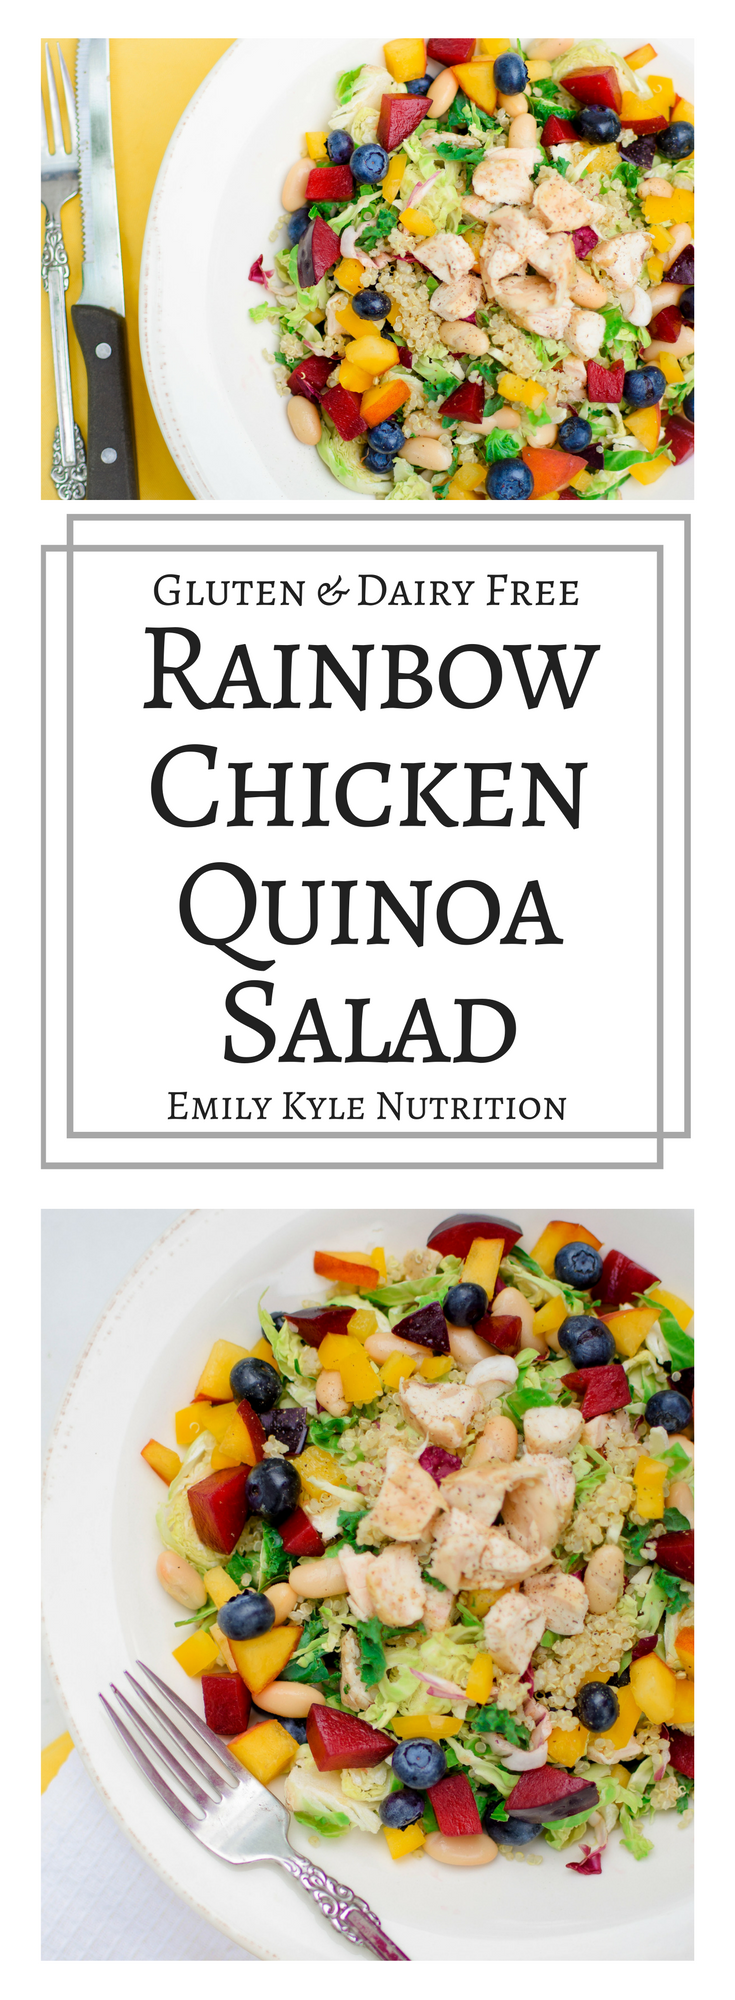 Brighten up your salad with this vibrant rainbow chicken quinoa salad that is made with good-for-you ingredients like fruit, vegetables, quinoa and lean chicken. | @EmKyleNutrition